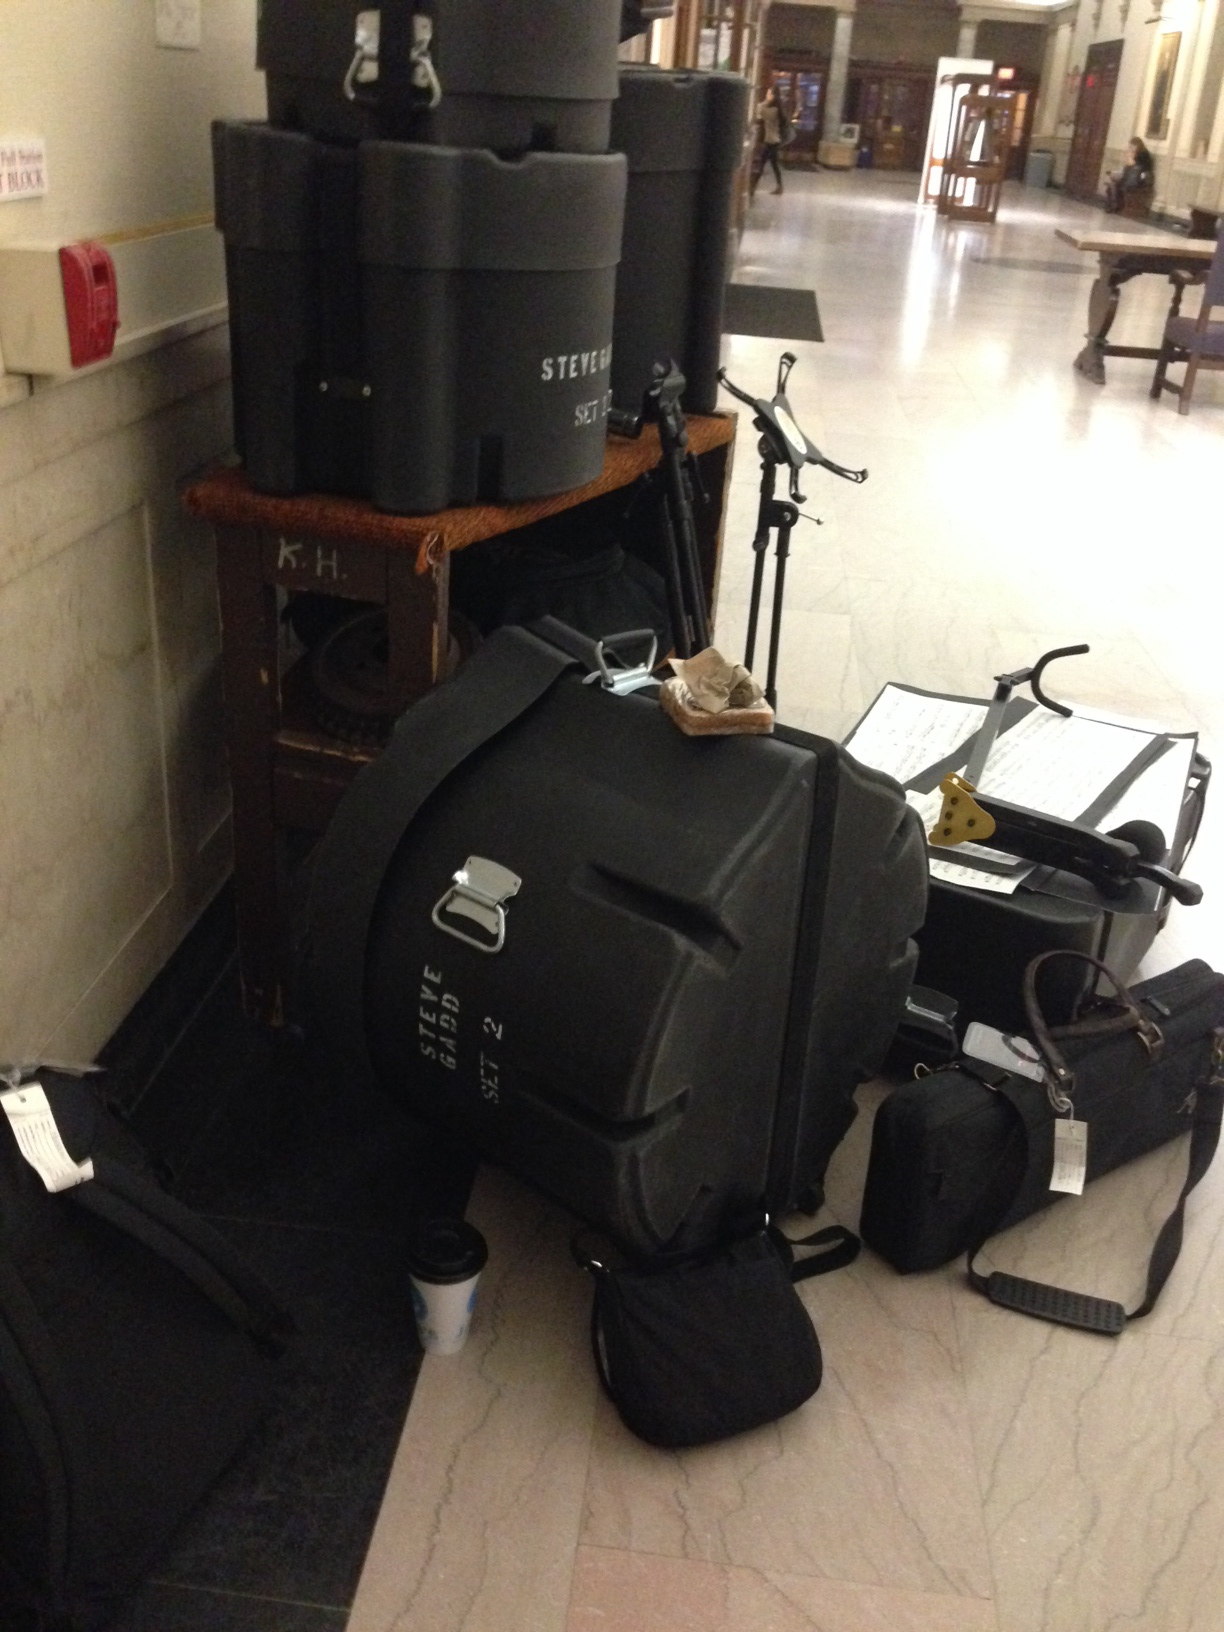 Chris was excited to be able to use one of Steve Gadd's drum kits for this concert at Eastman. (This is just half of our gear in the photo!)